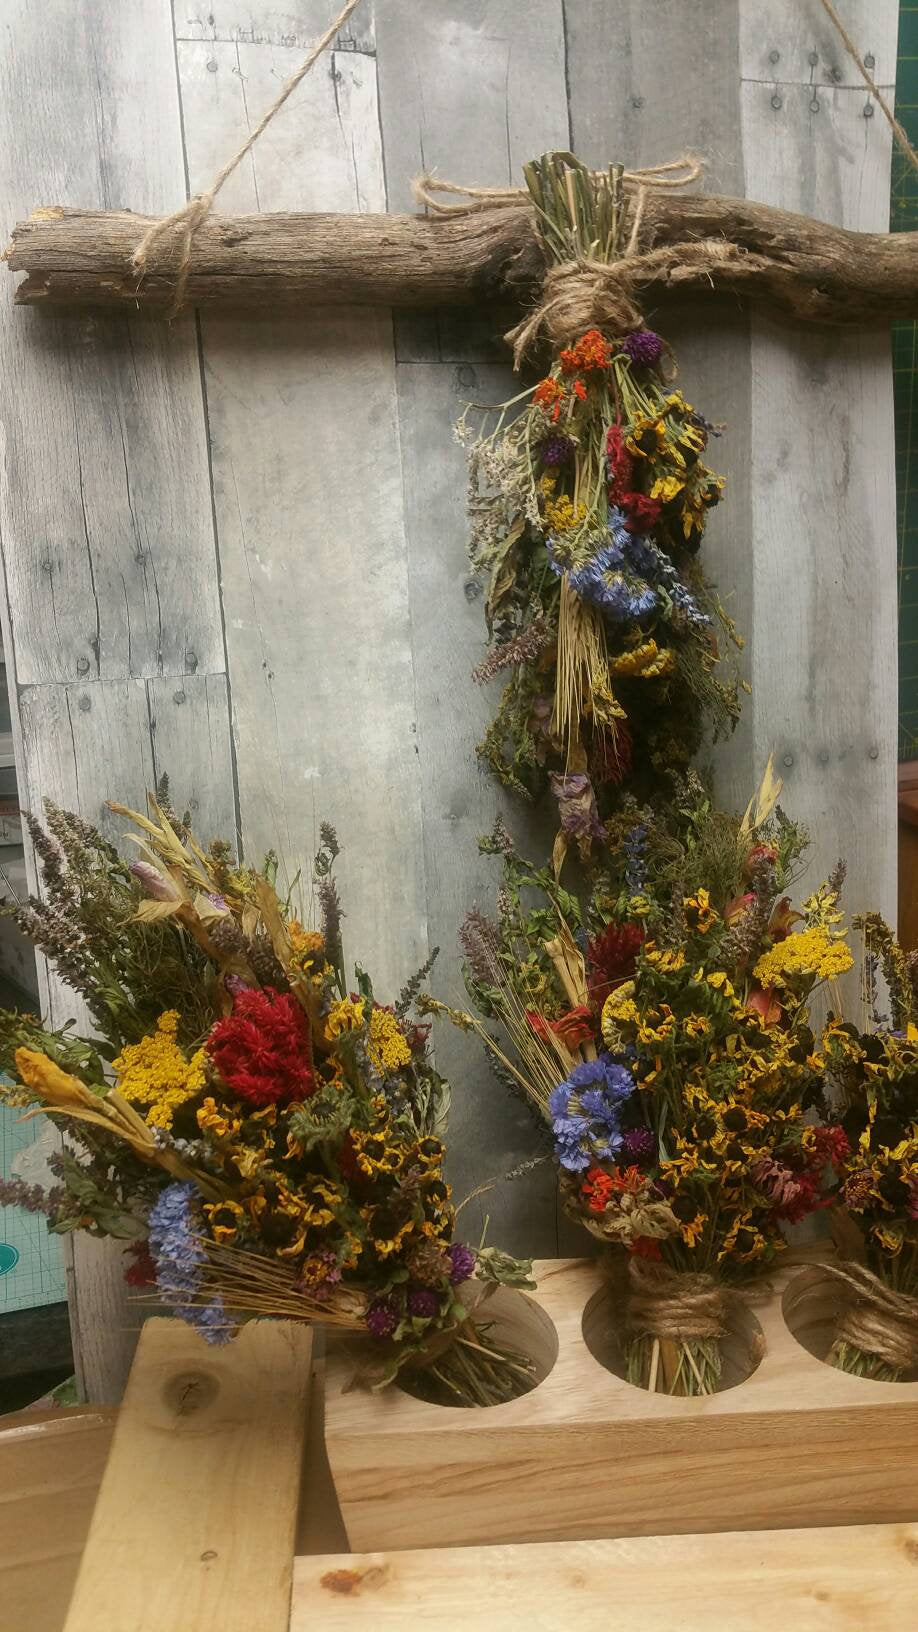 Medium Hanging Dried Herbal Floral Bouquet with Rustic wooden herbal drying rack